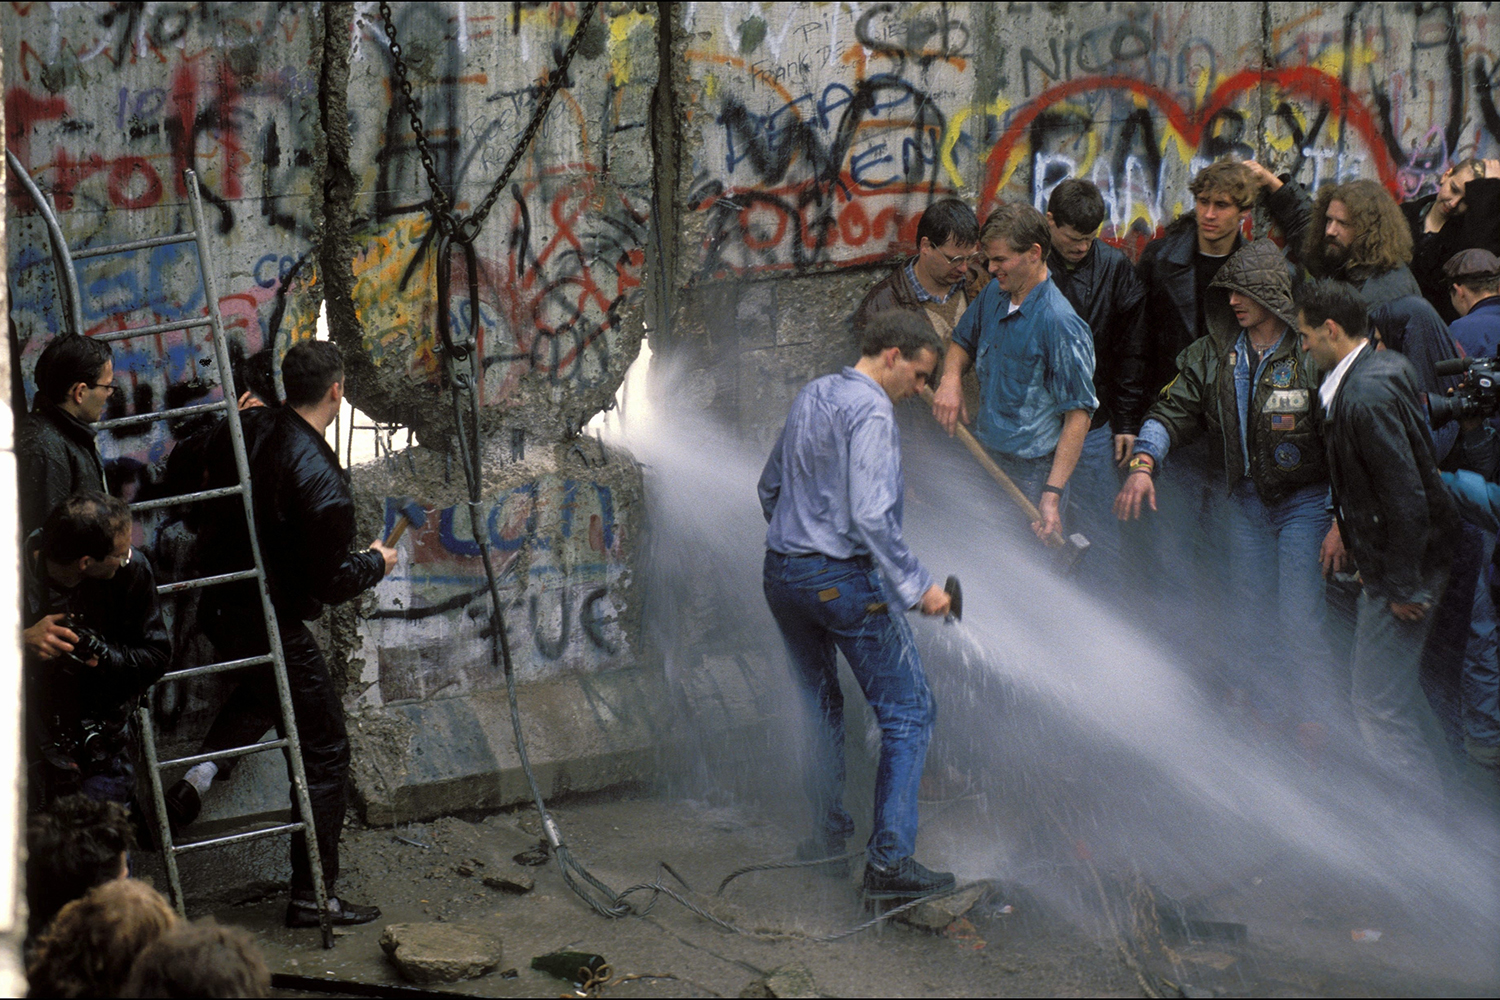 The opening of the Berlin Wall on Nov. 11, 1989. Patrick Piel/Gamma-Rapho via Getty Images